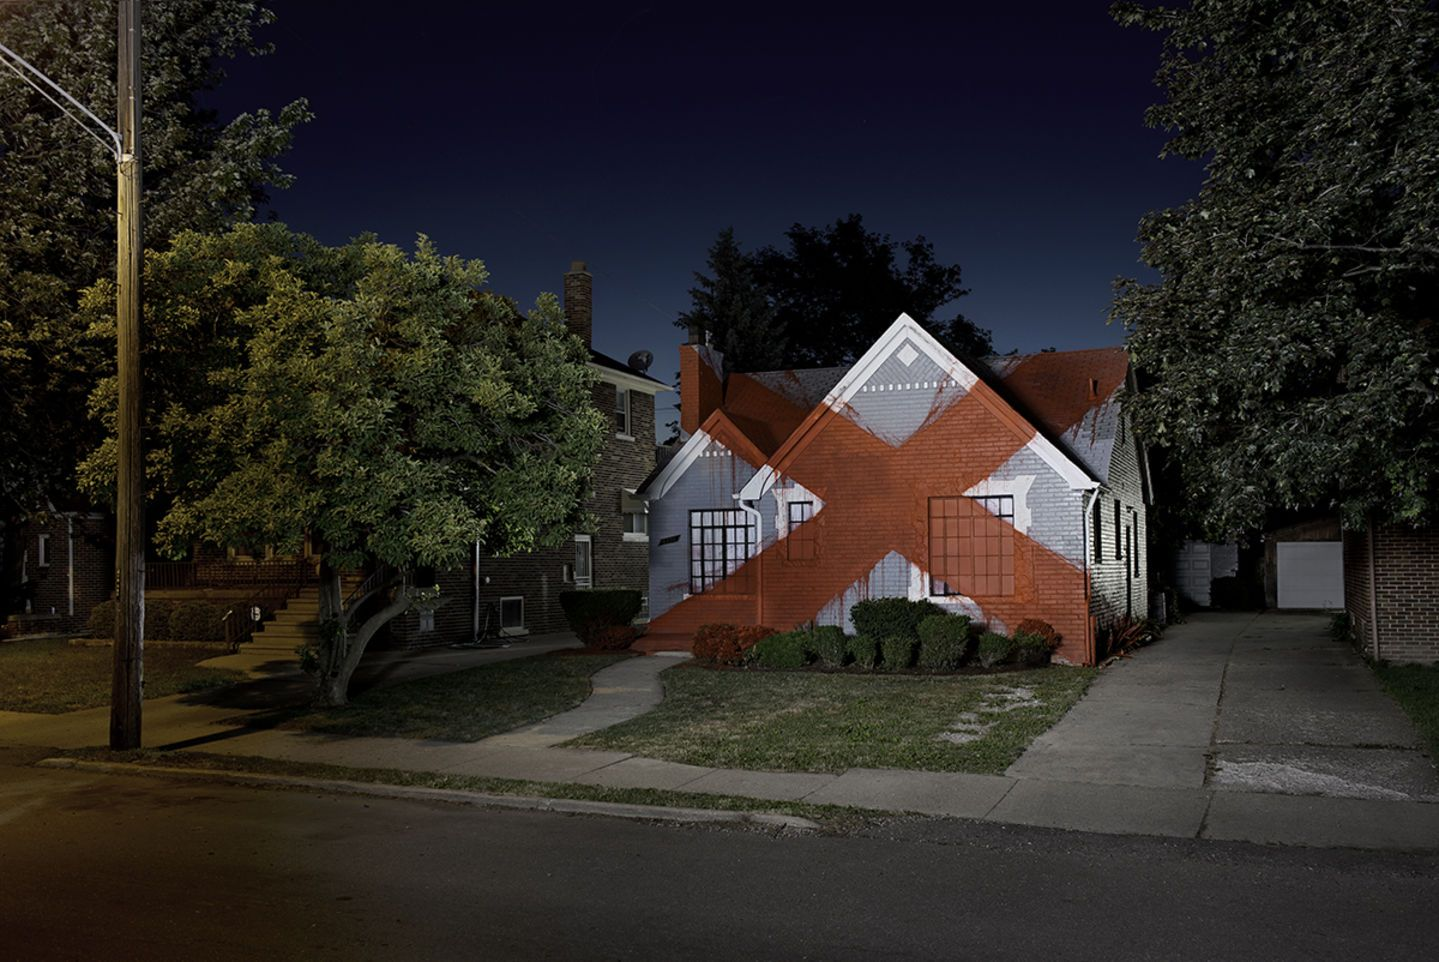 Suburban is a multifaceted photography, film, installation exhibition by artist Ian Strange.